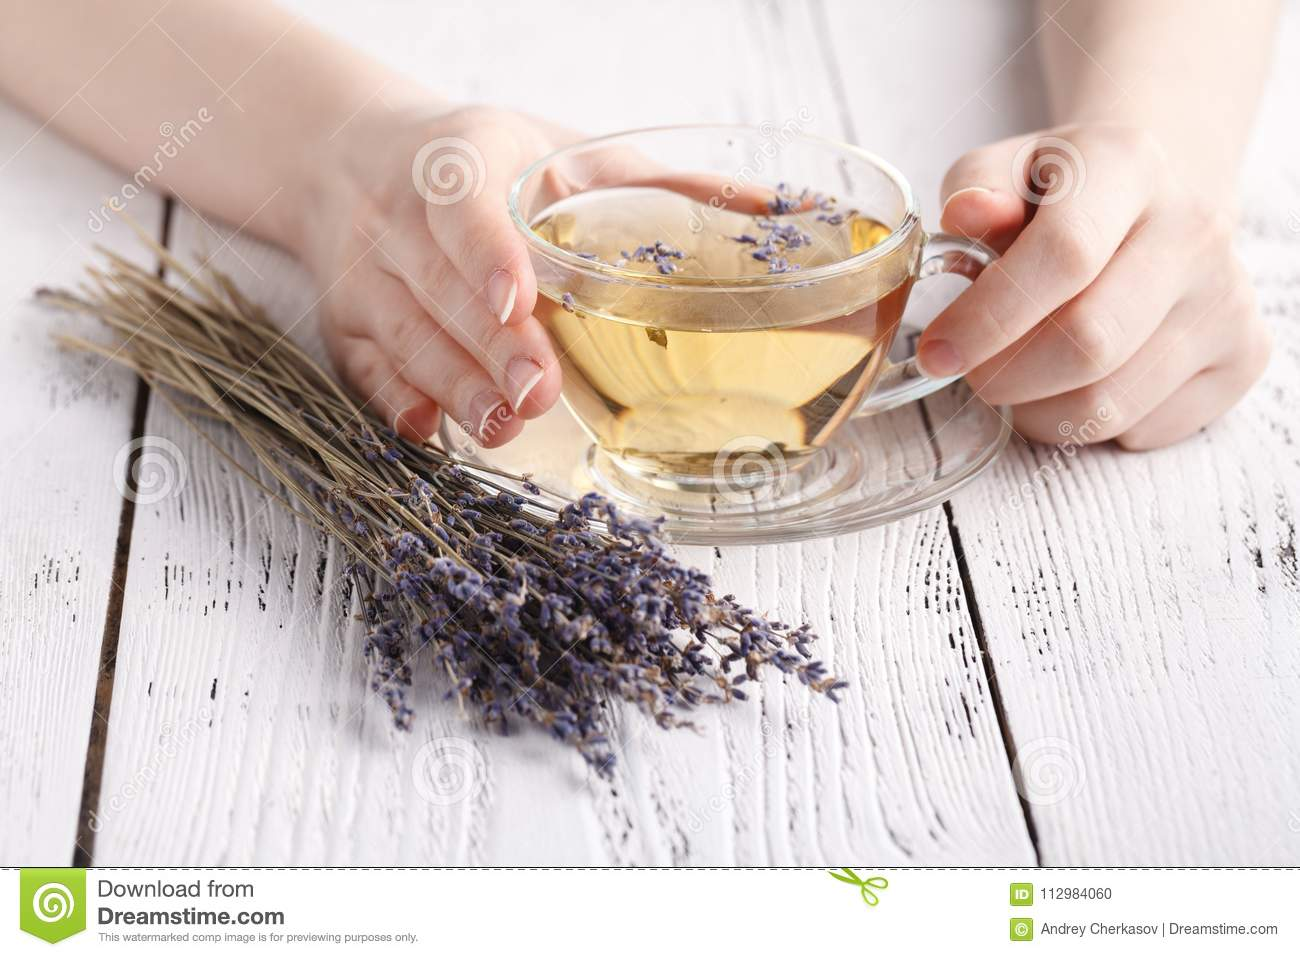 Relaxing herbal tea with lavender in hands